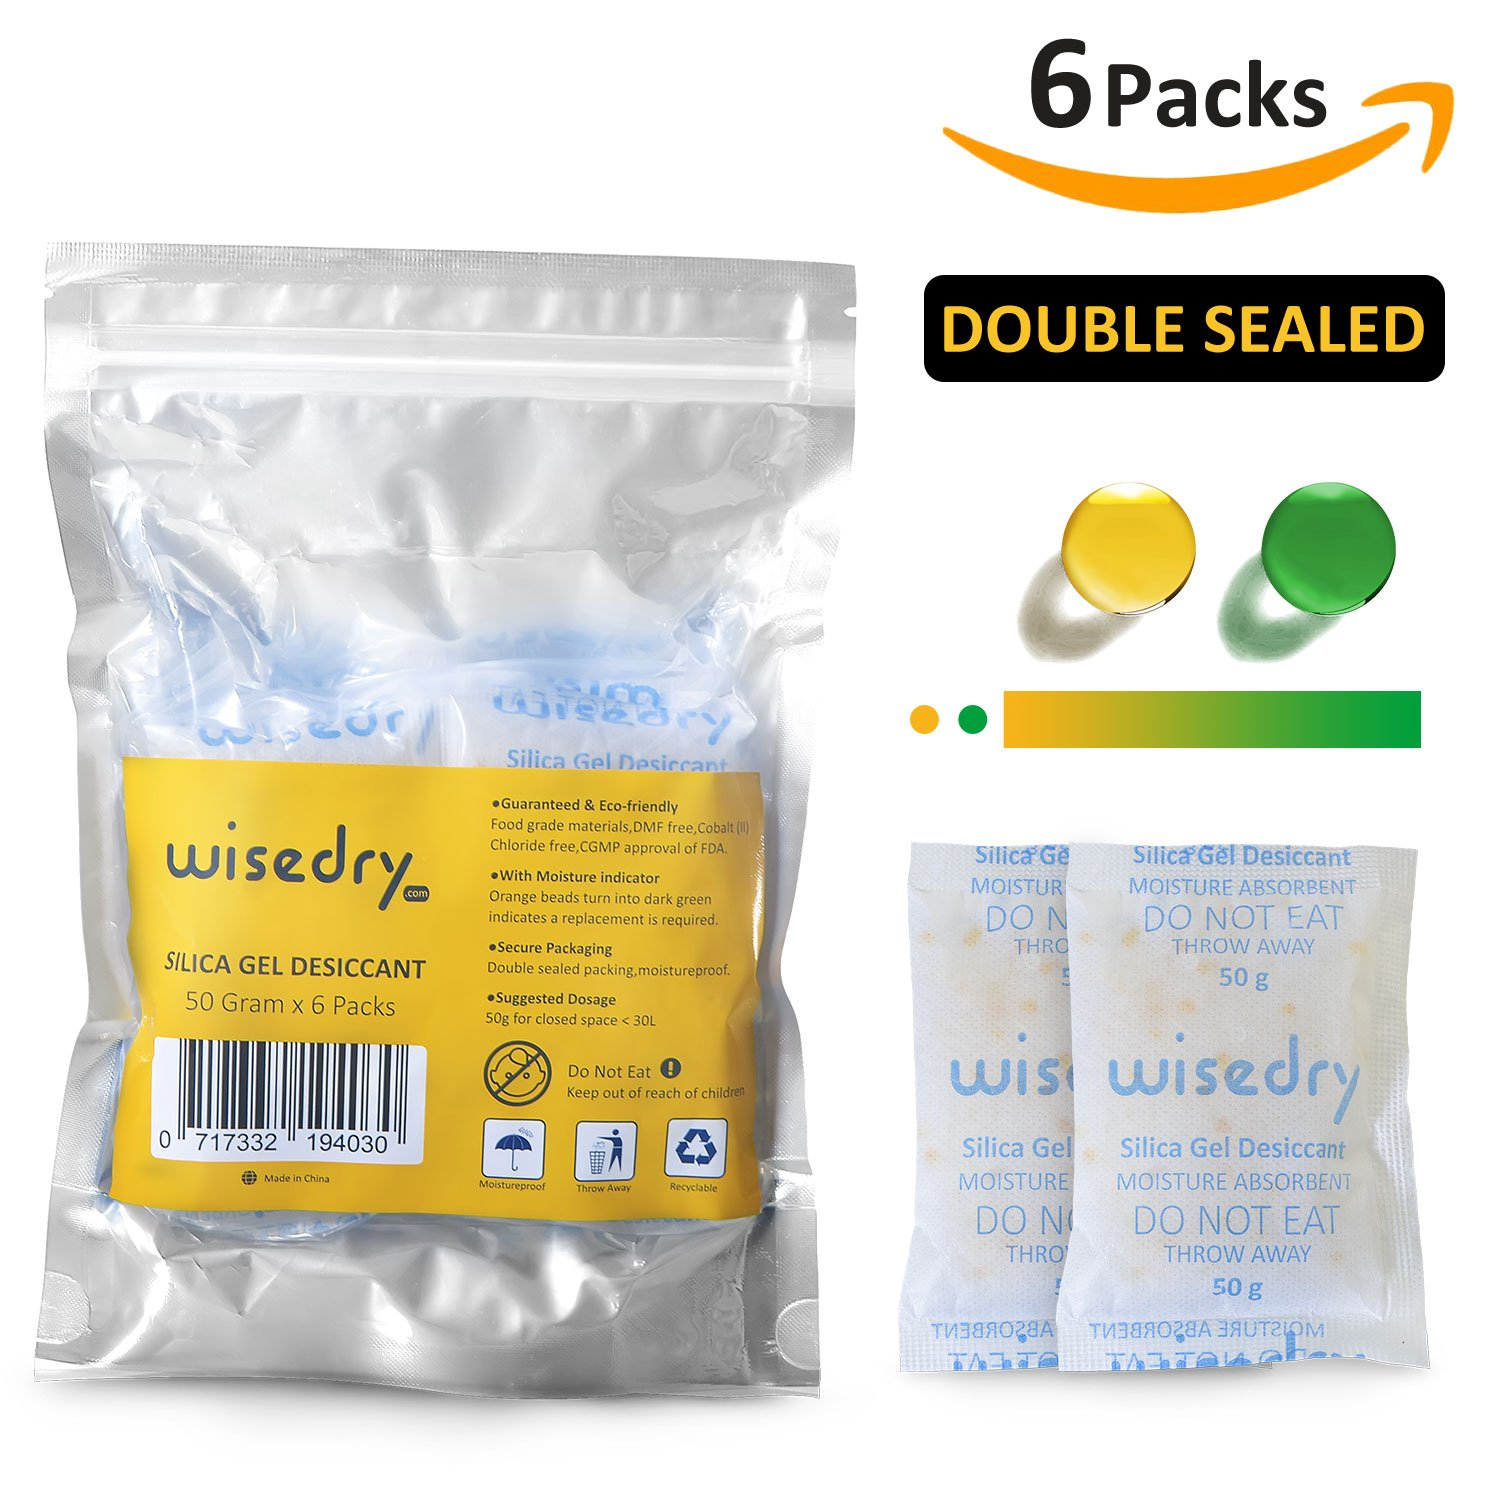 50 Gram [6 PACKS] Silica Gel Desiccant Packets with Orange Beads Humidity Indicator Safe Double Packed for Air Dryer Moisture Removal, Food Grade …